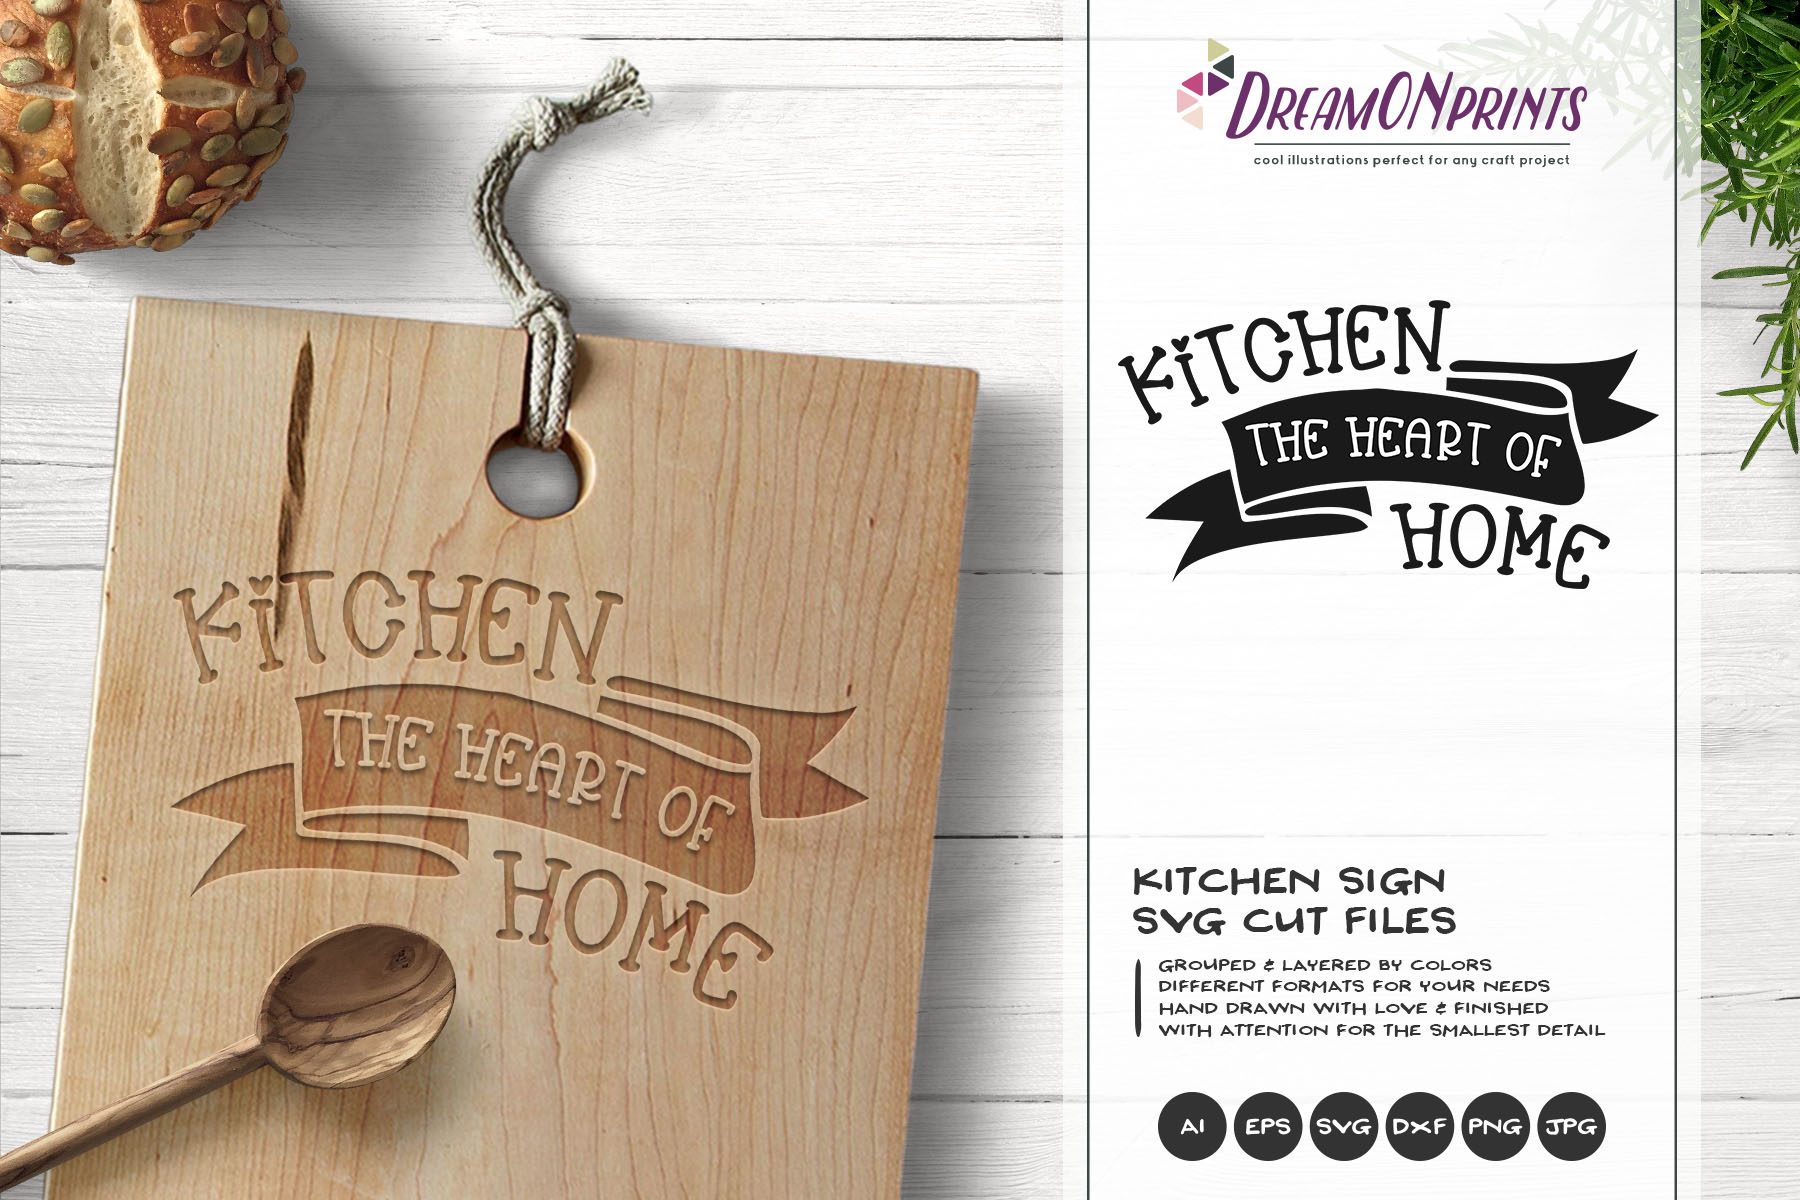 Kitchen the Heart of Home SVG - Kitchen SVG Cut Files example image 1